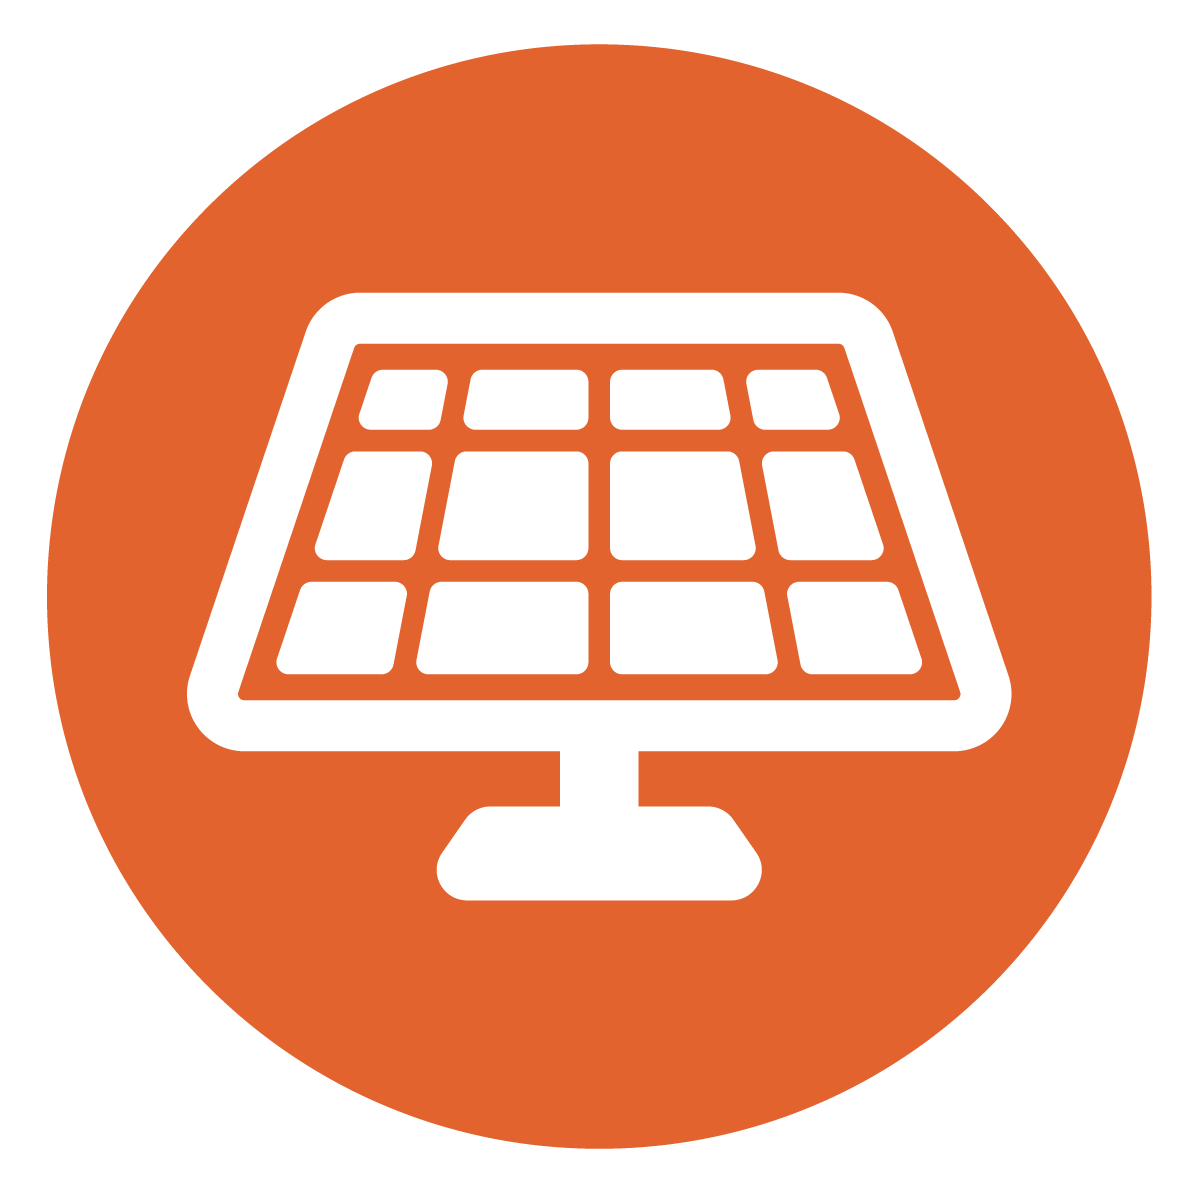 white solar panel in dark orange circle